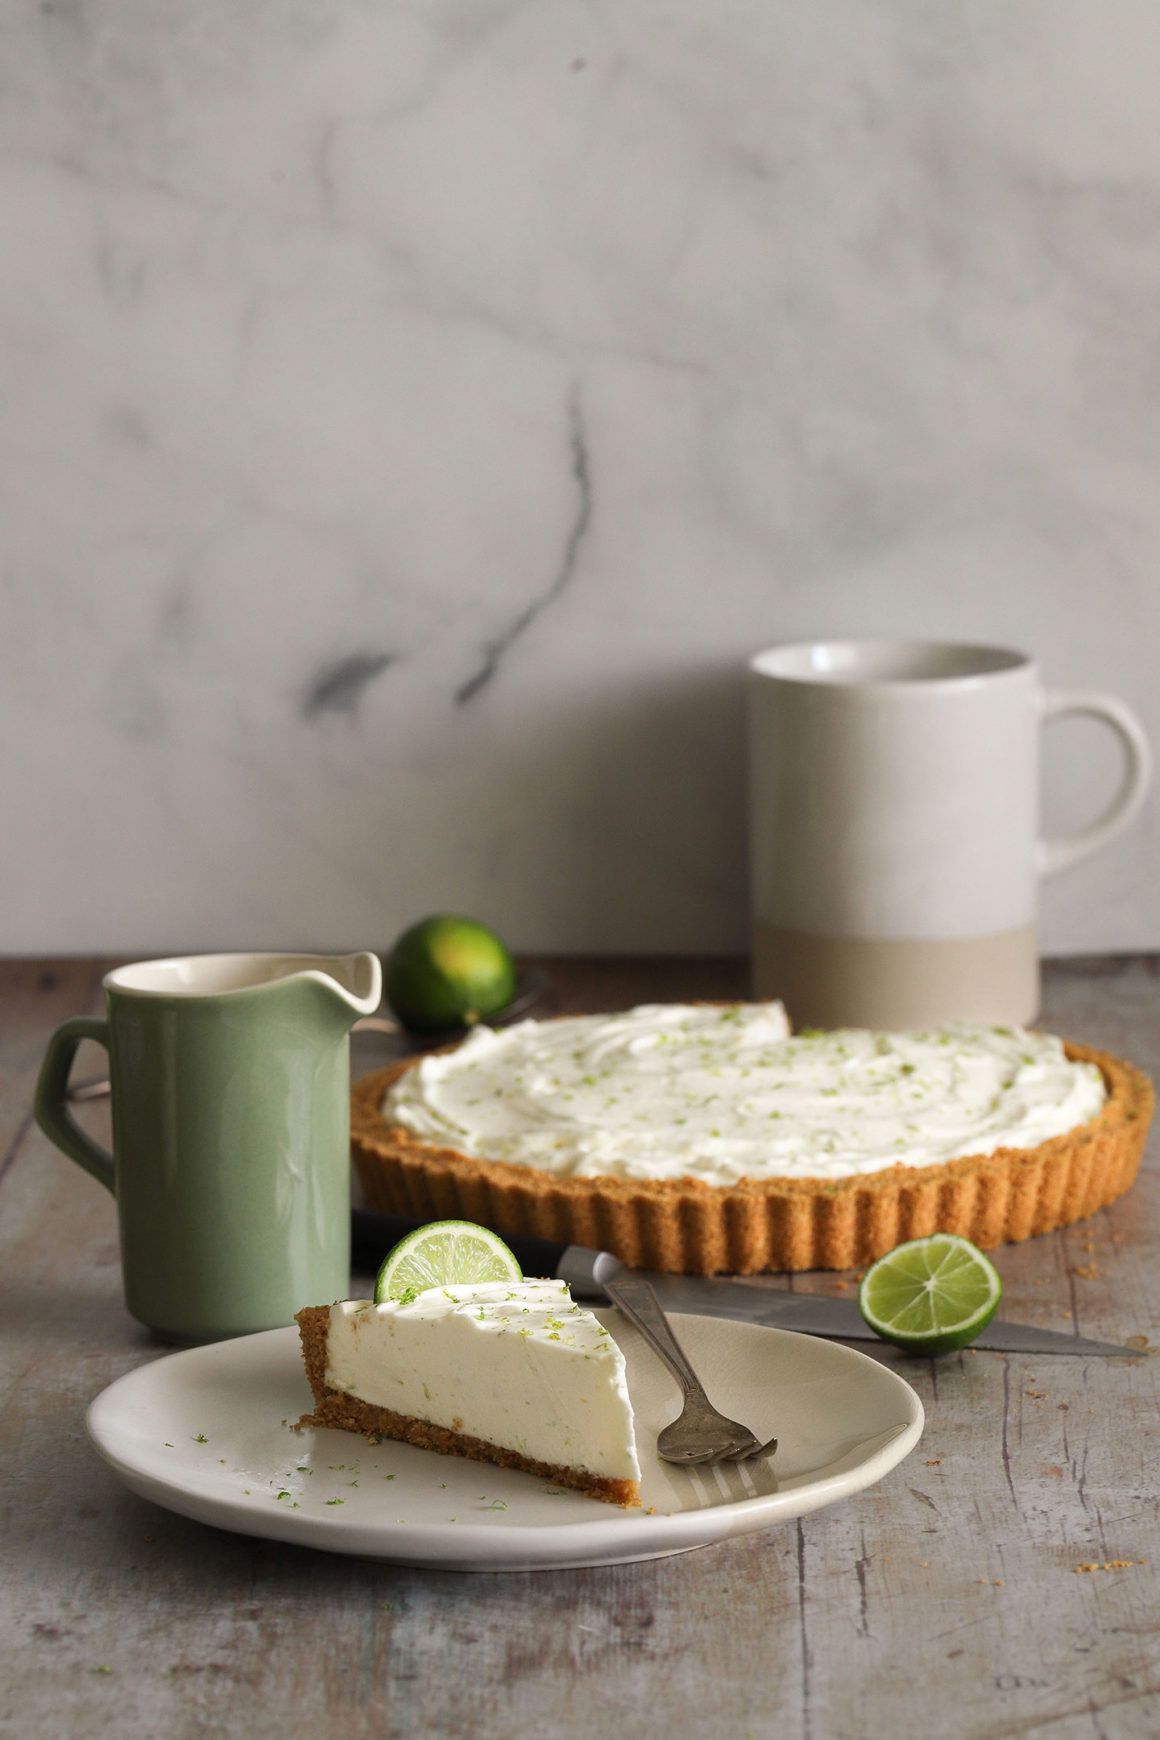 Ginger Lime Tart with Slice on Table